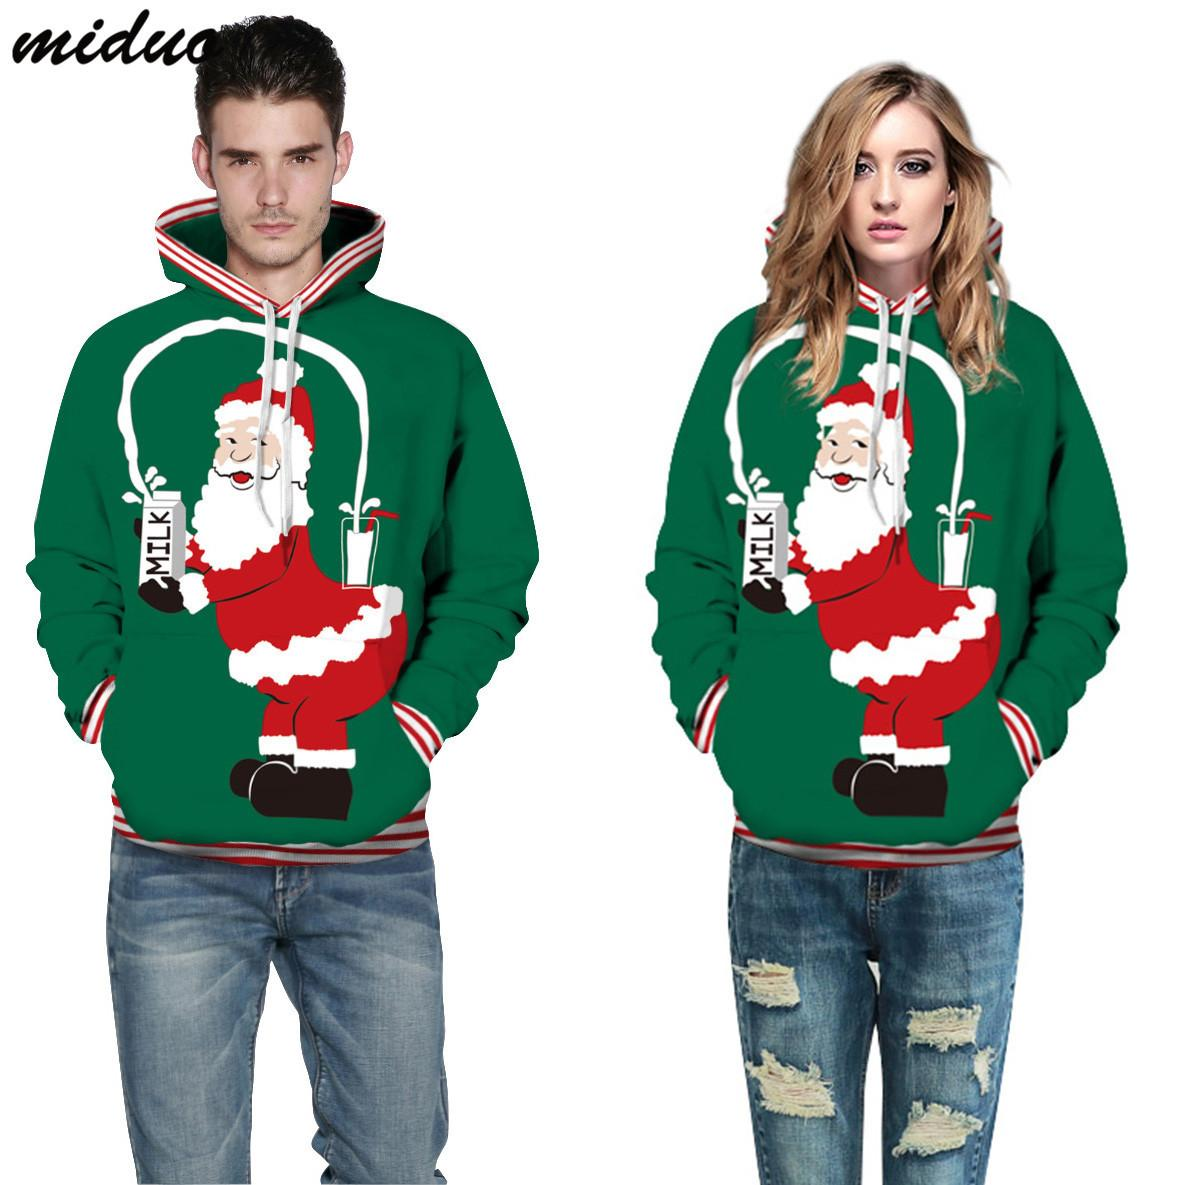 d31ab835d 2019 European and American style printed men's tops, new spoof Christmas  series, digital printing, plus size Couples hoodies for women men